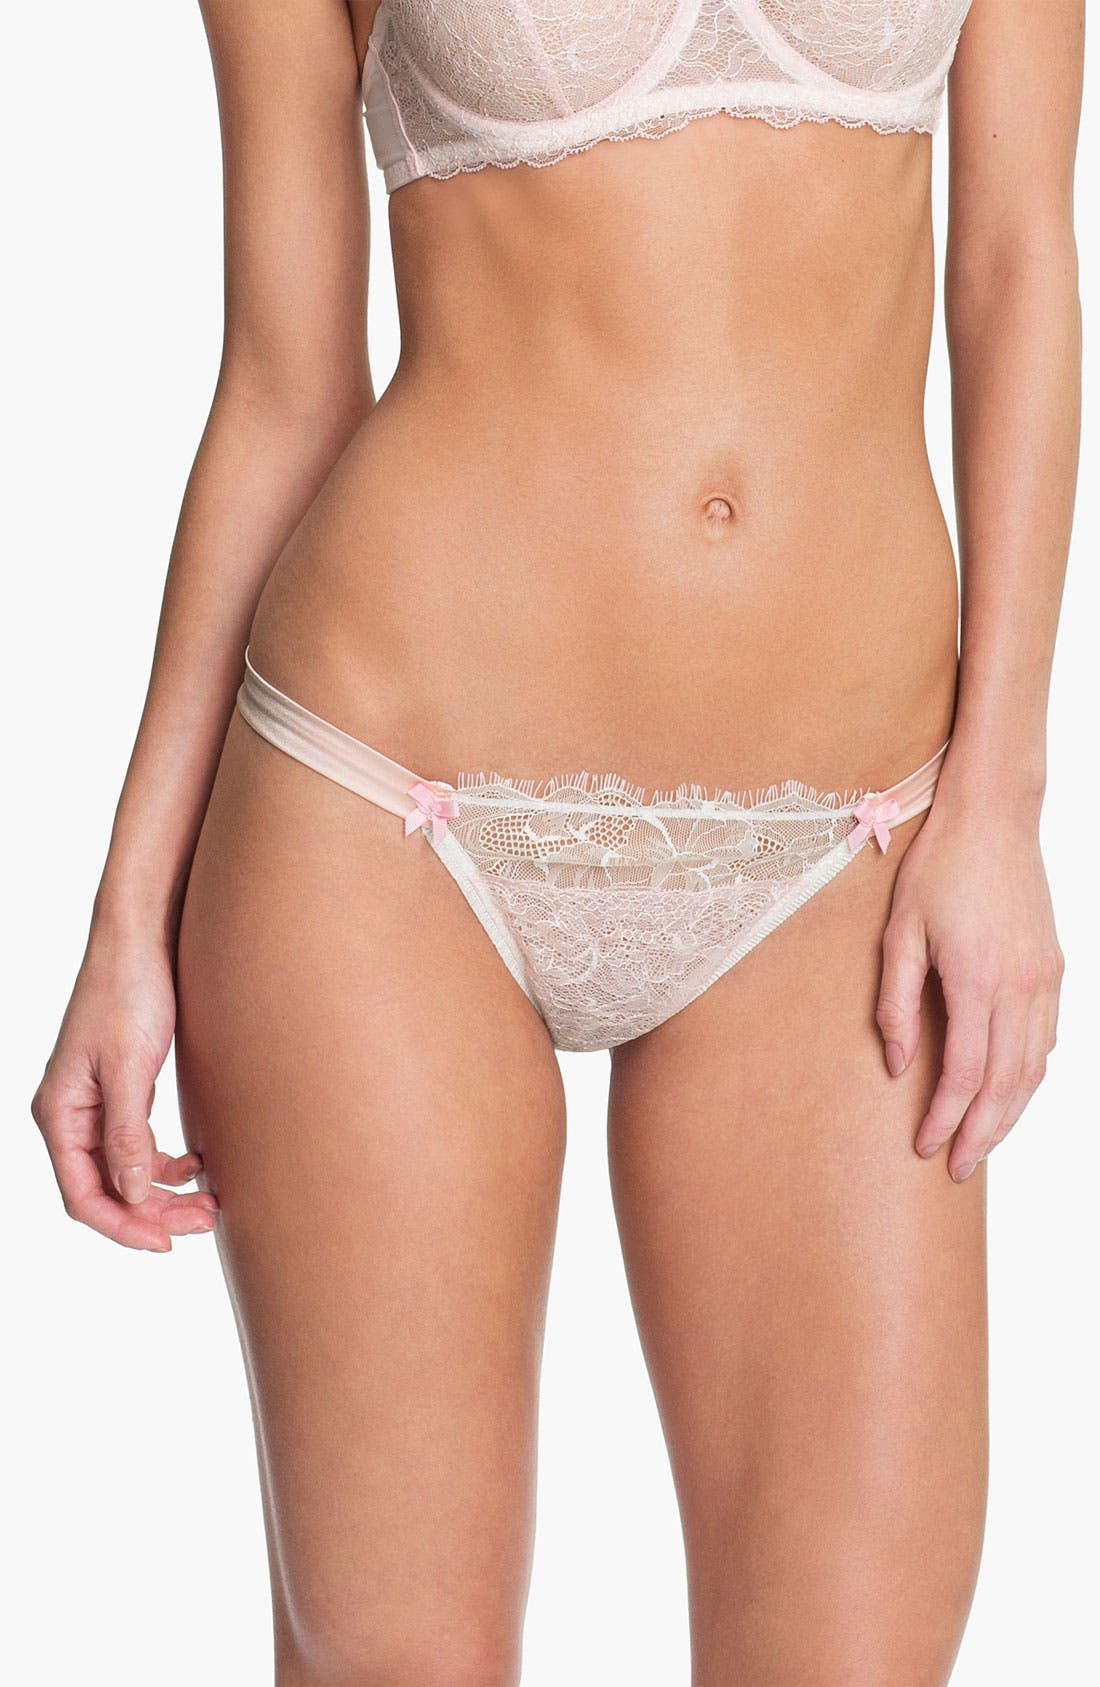 Alternate Image 1 Selected - Mimi Holliday 'Blossom' Thong